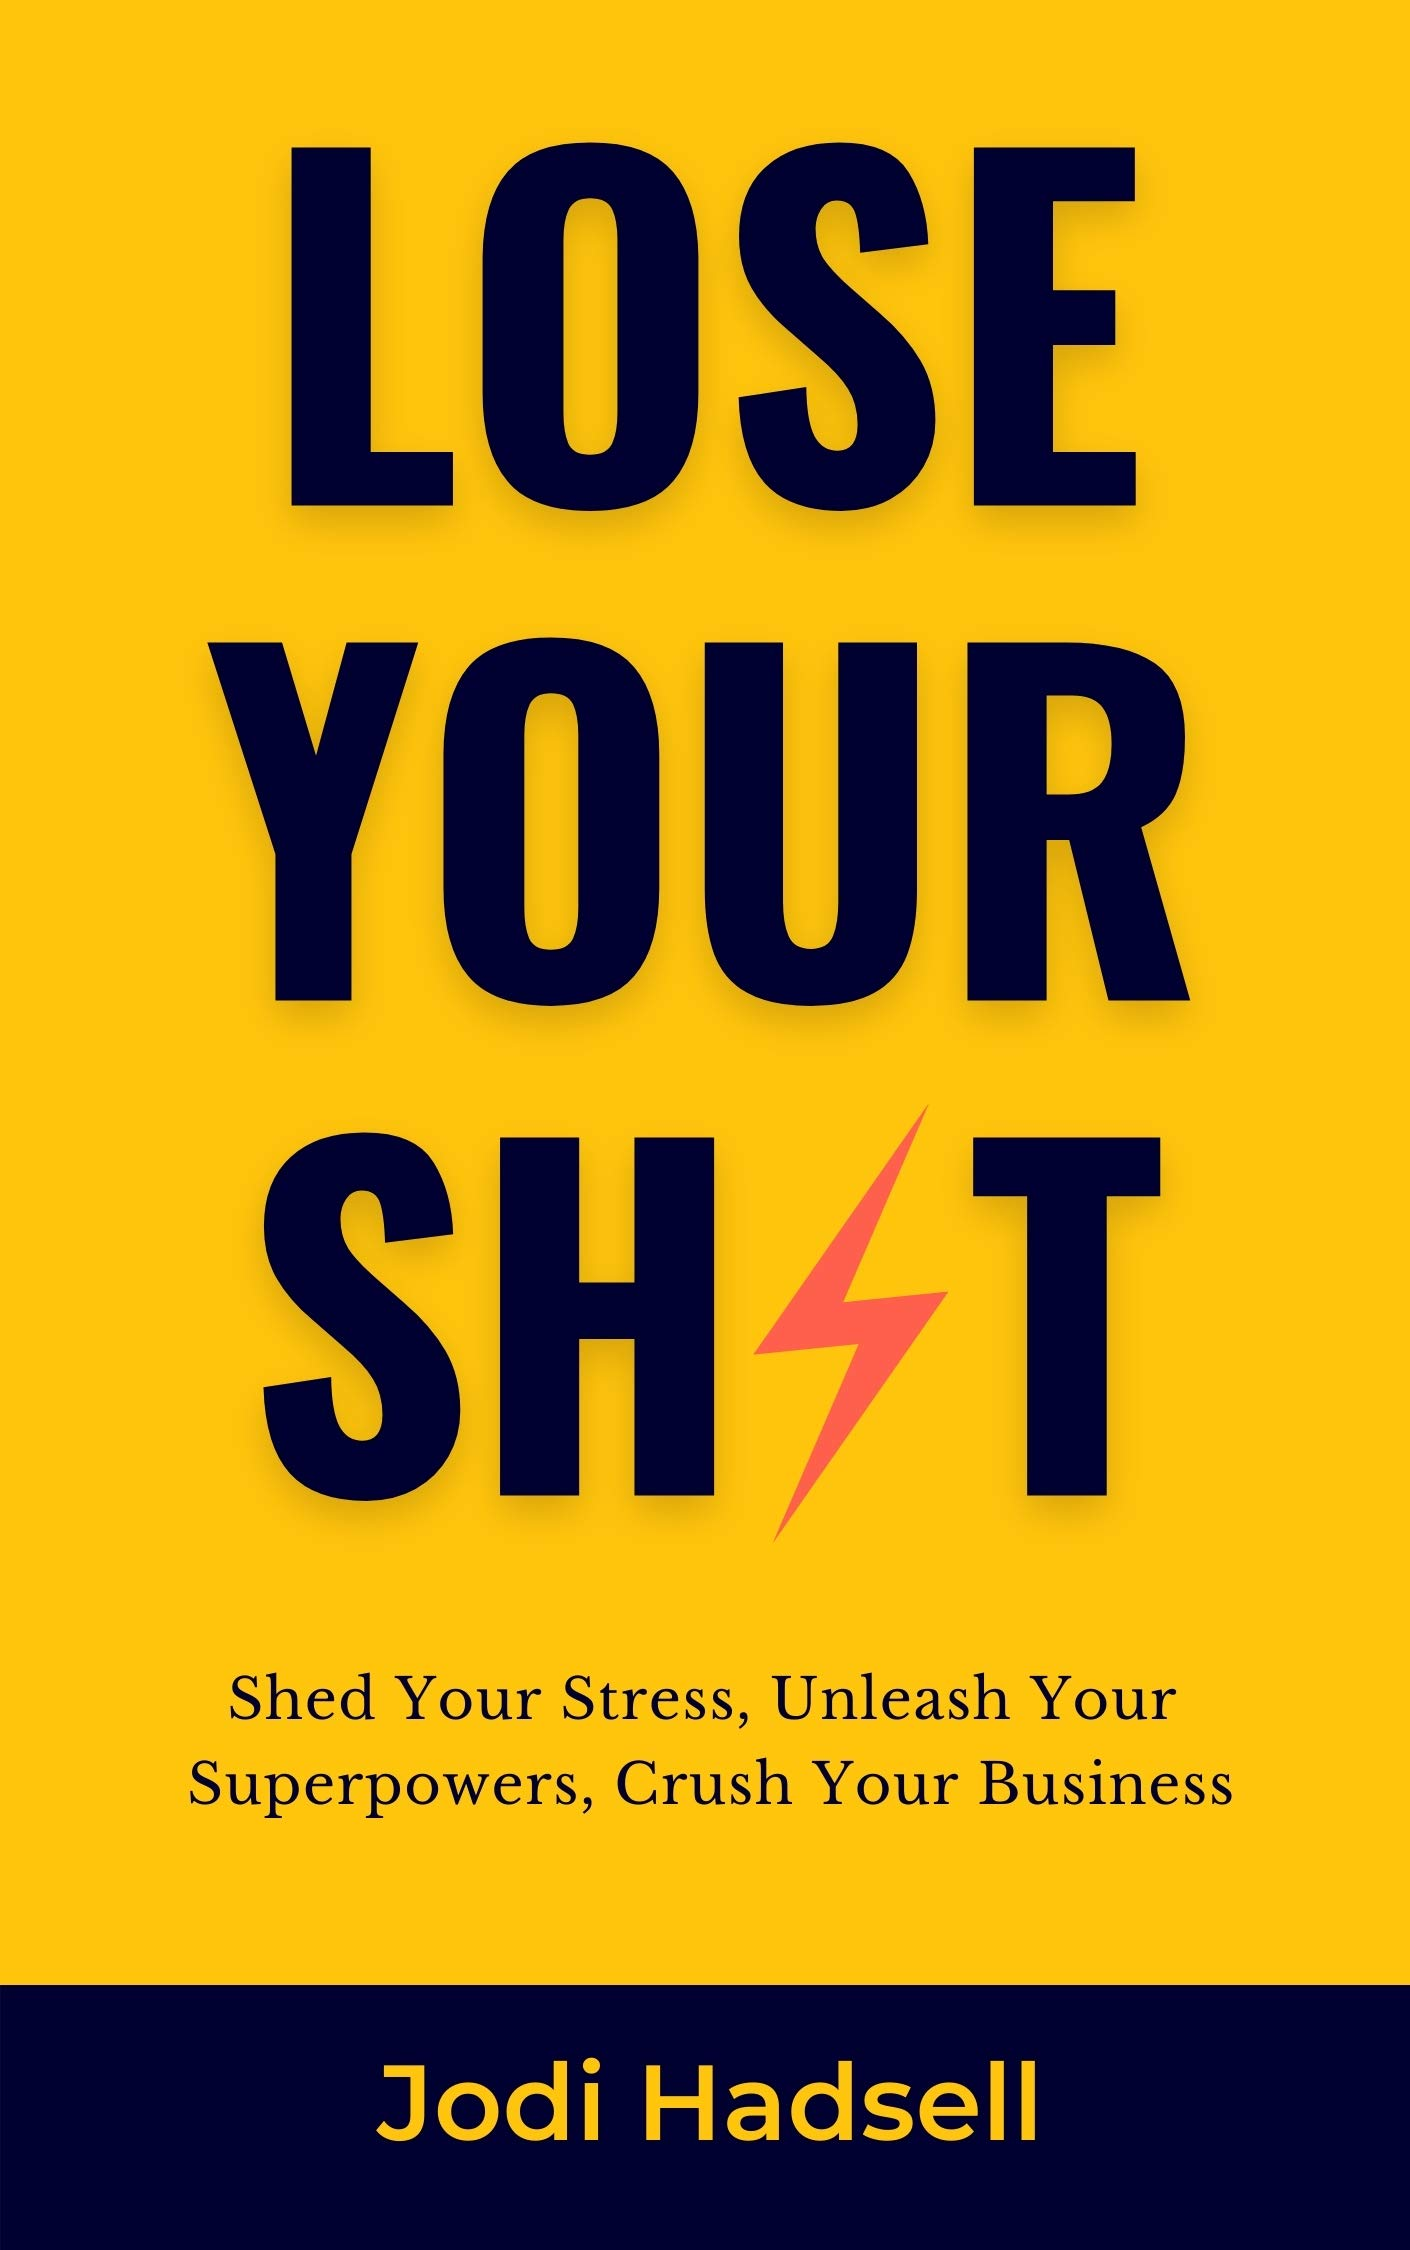 Lose Your Sh*t: Shed Your Stress, Unleash Your Superpowers, Crush Your Business